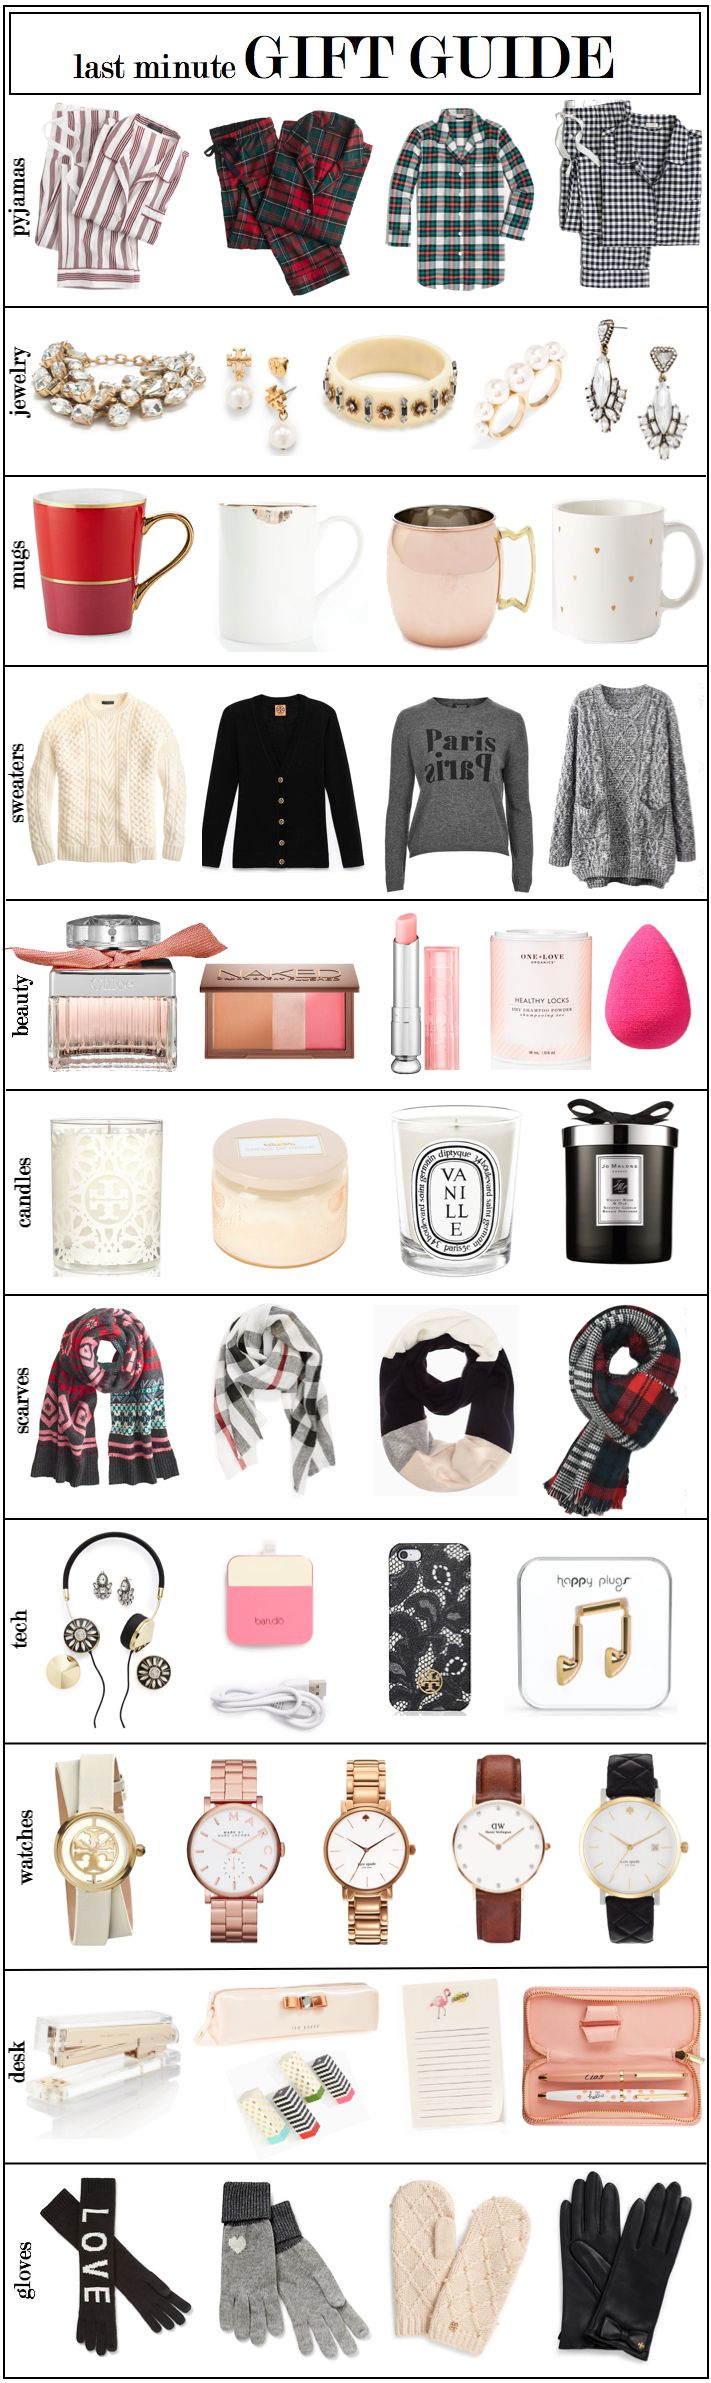 last minute gifts   gifts   pinterest   gifts, last minute gifts and